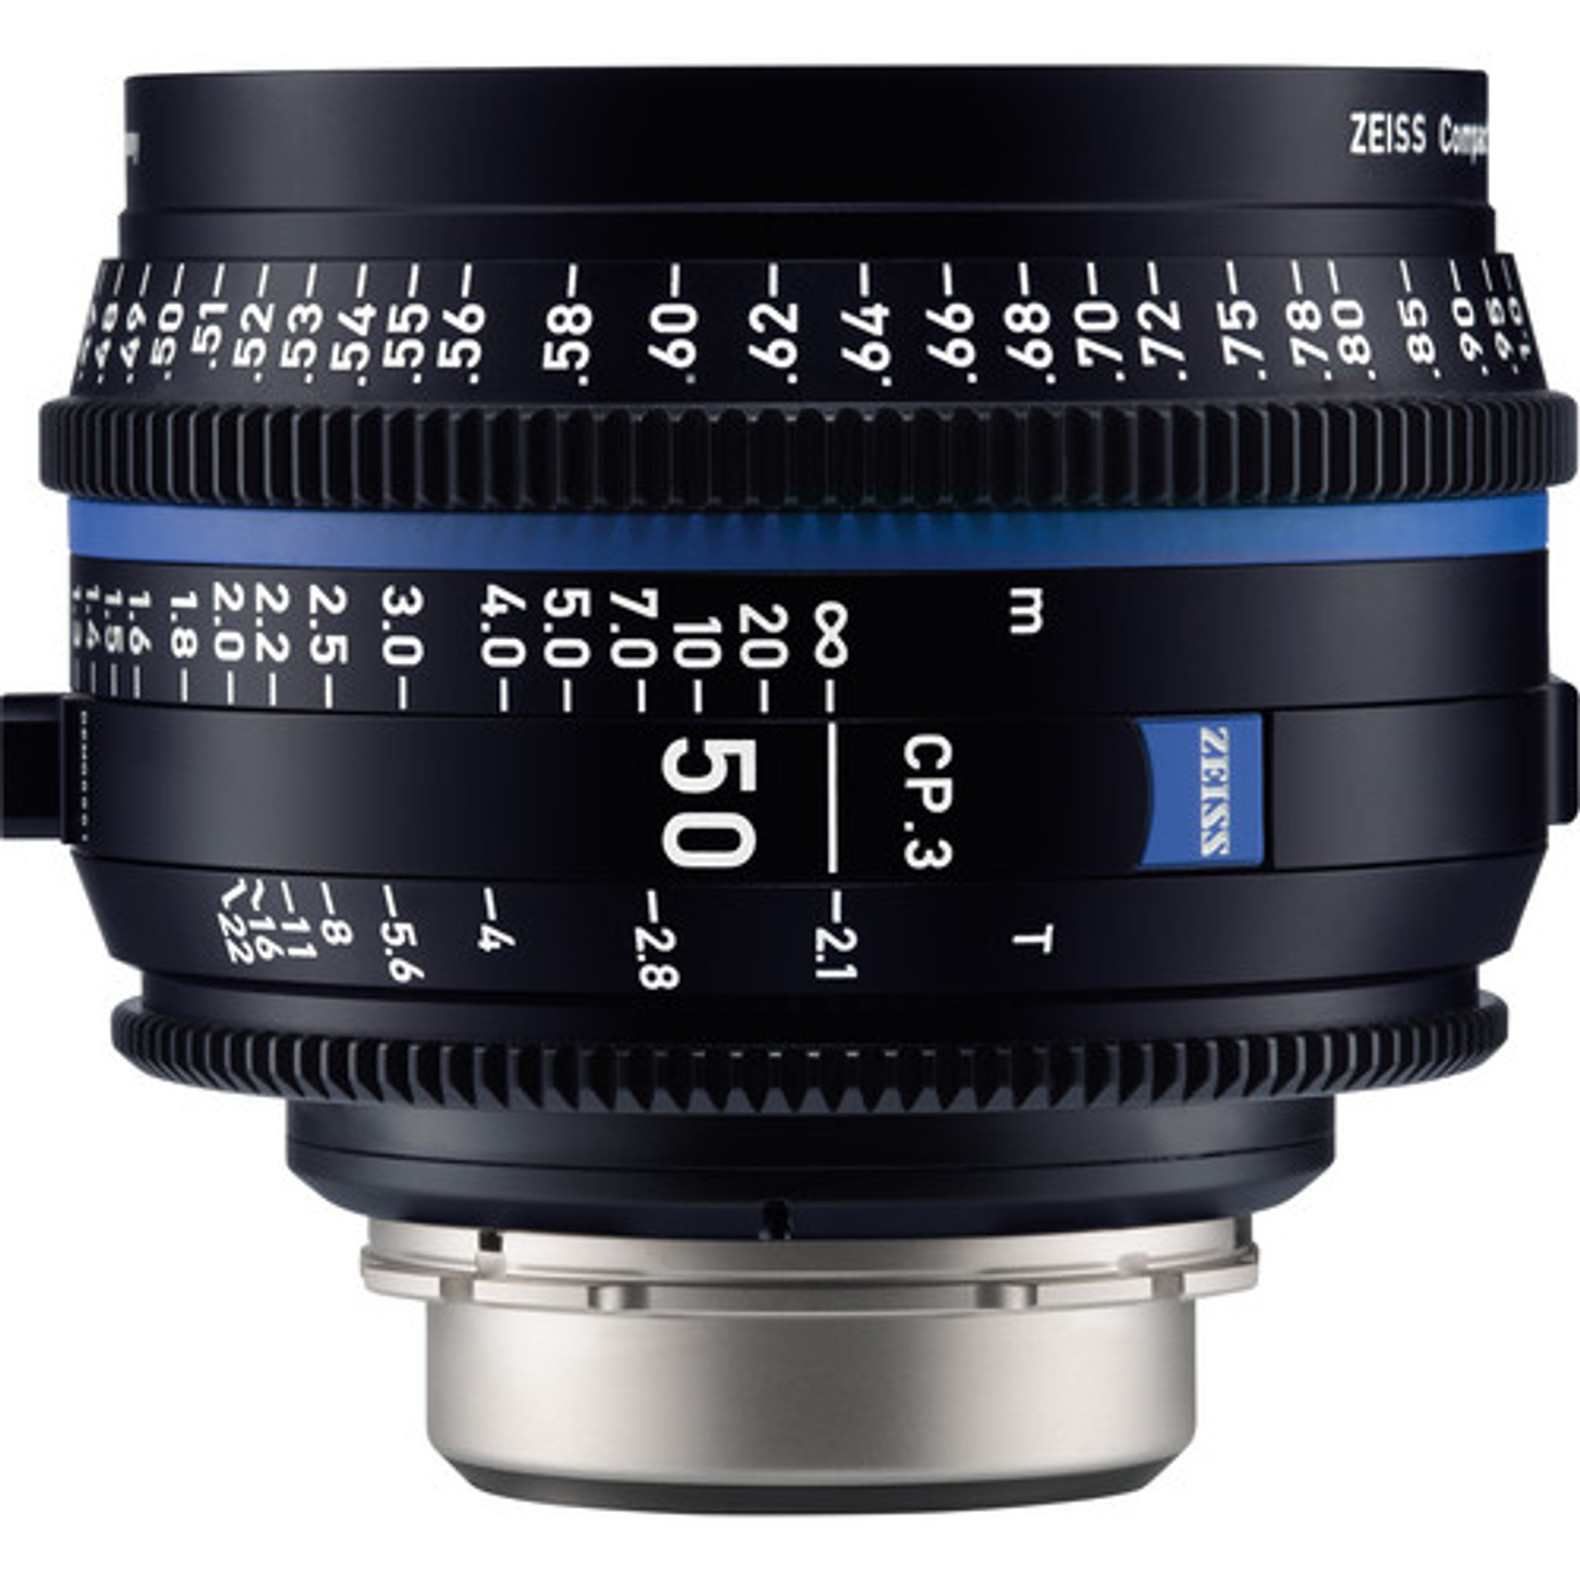 Zeiss CP 3 50mm T2 1 Compact Prime Lens (Nikon F Mount)